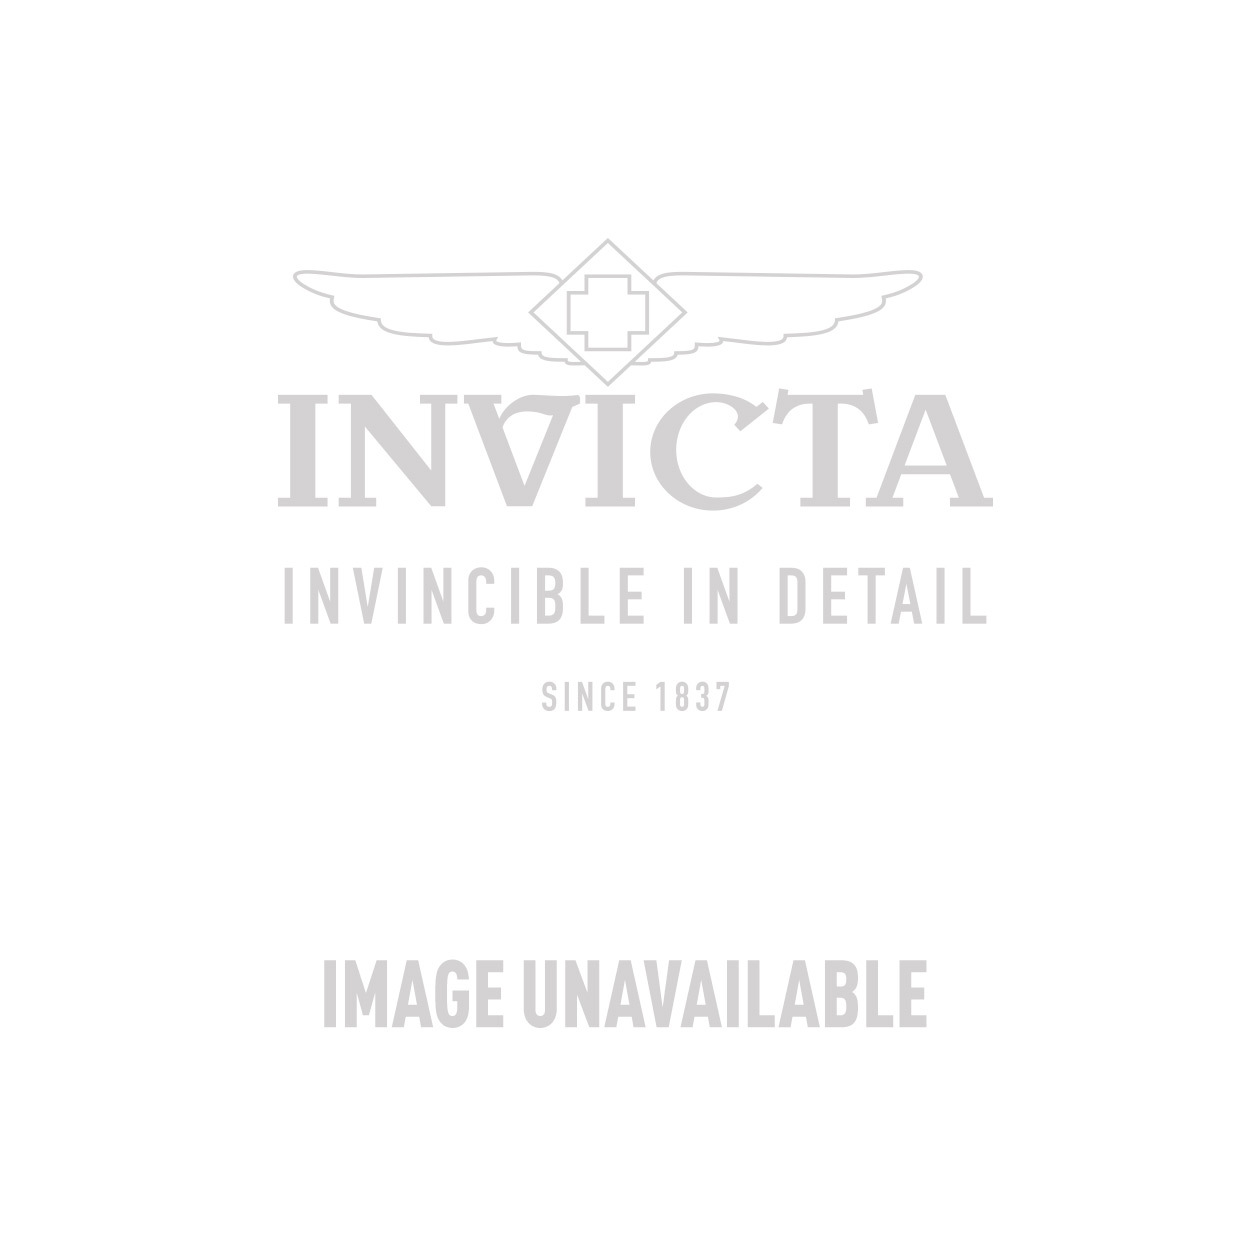 Invicta Speedway Swiss Movement Quartz Watch - Rose Gold, Black case with Black tone Leather band - Model 19303